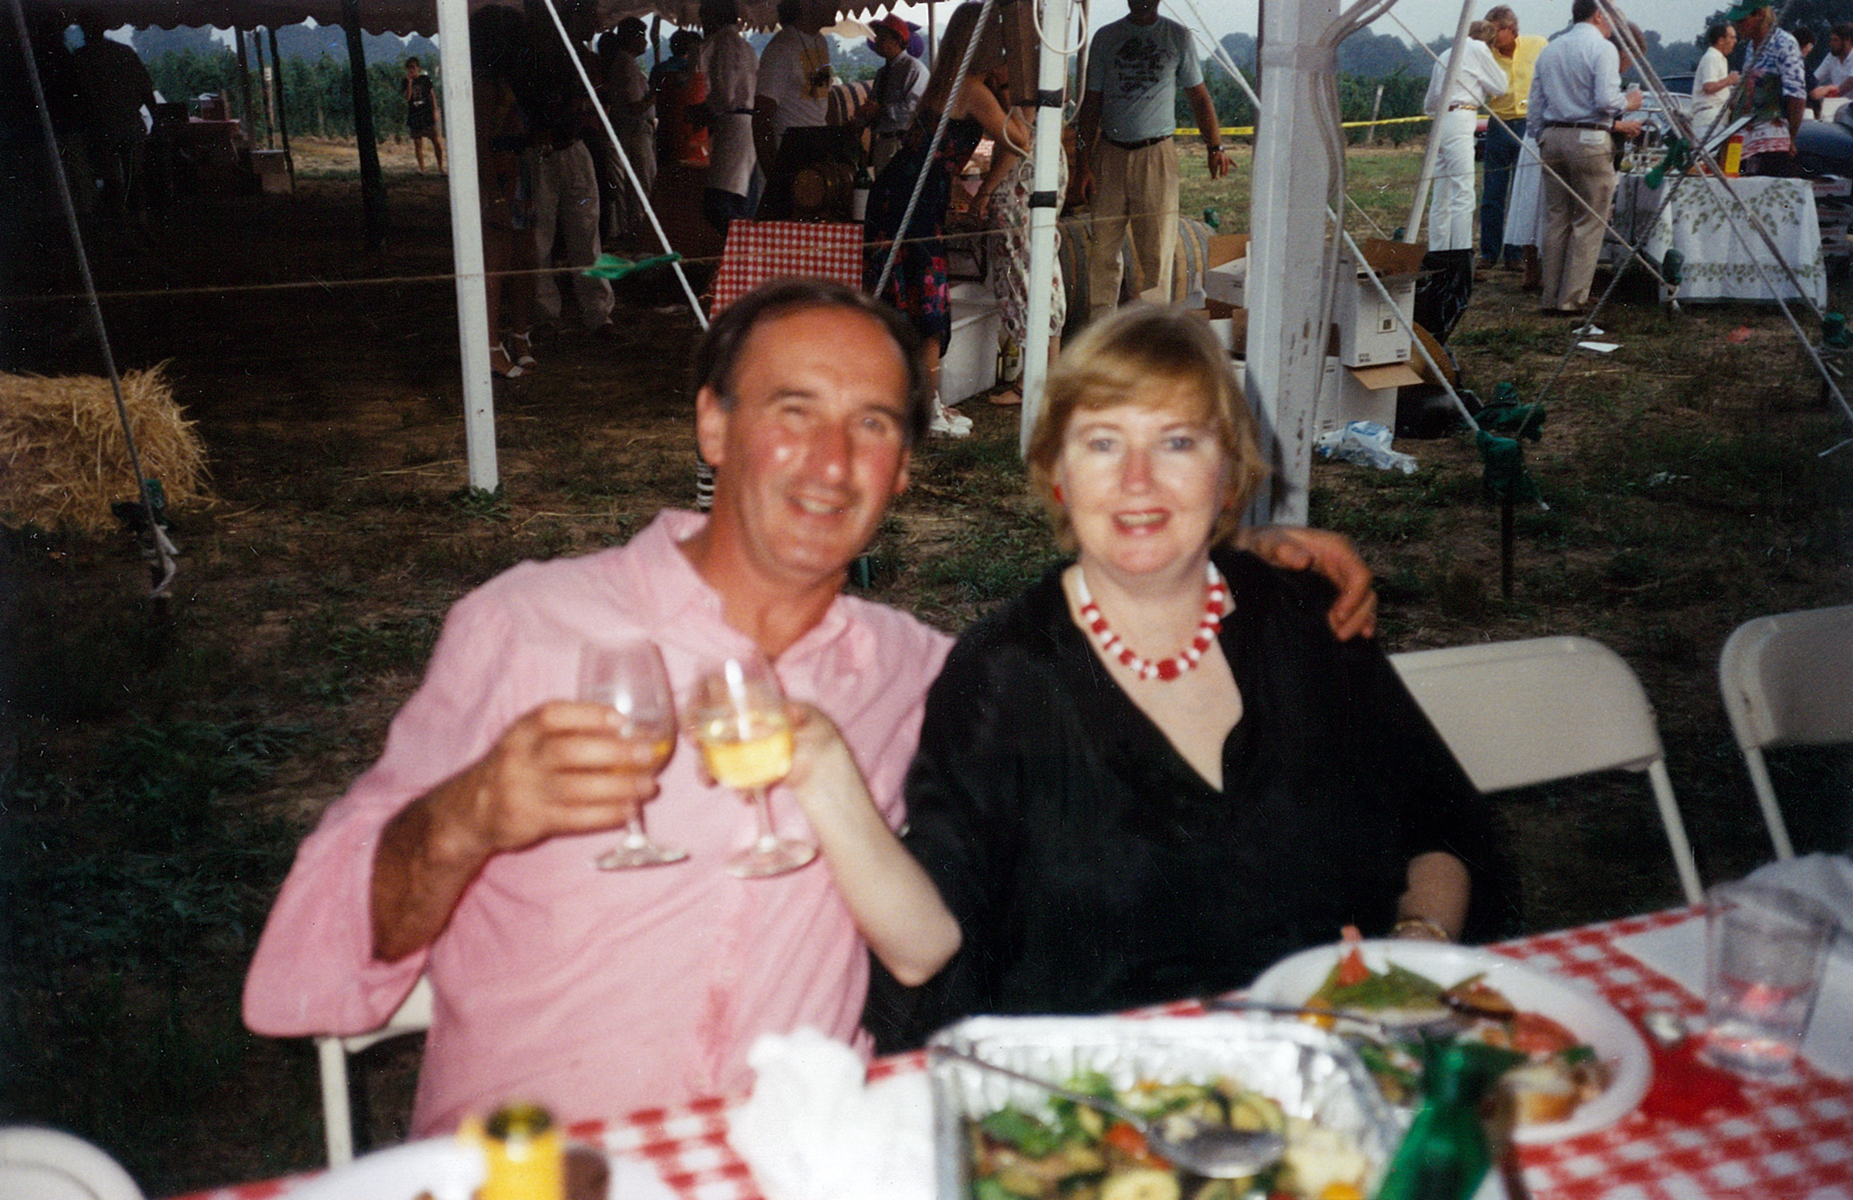 Eileen Obser and her late husband, Sam Boxer at the Long Island Barrel Tasting & Barbecue. Outside the tent, is Starr Boggs, in white.